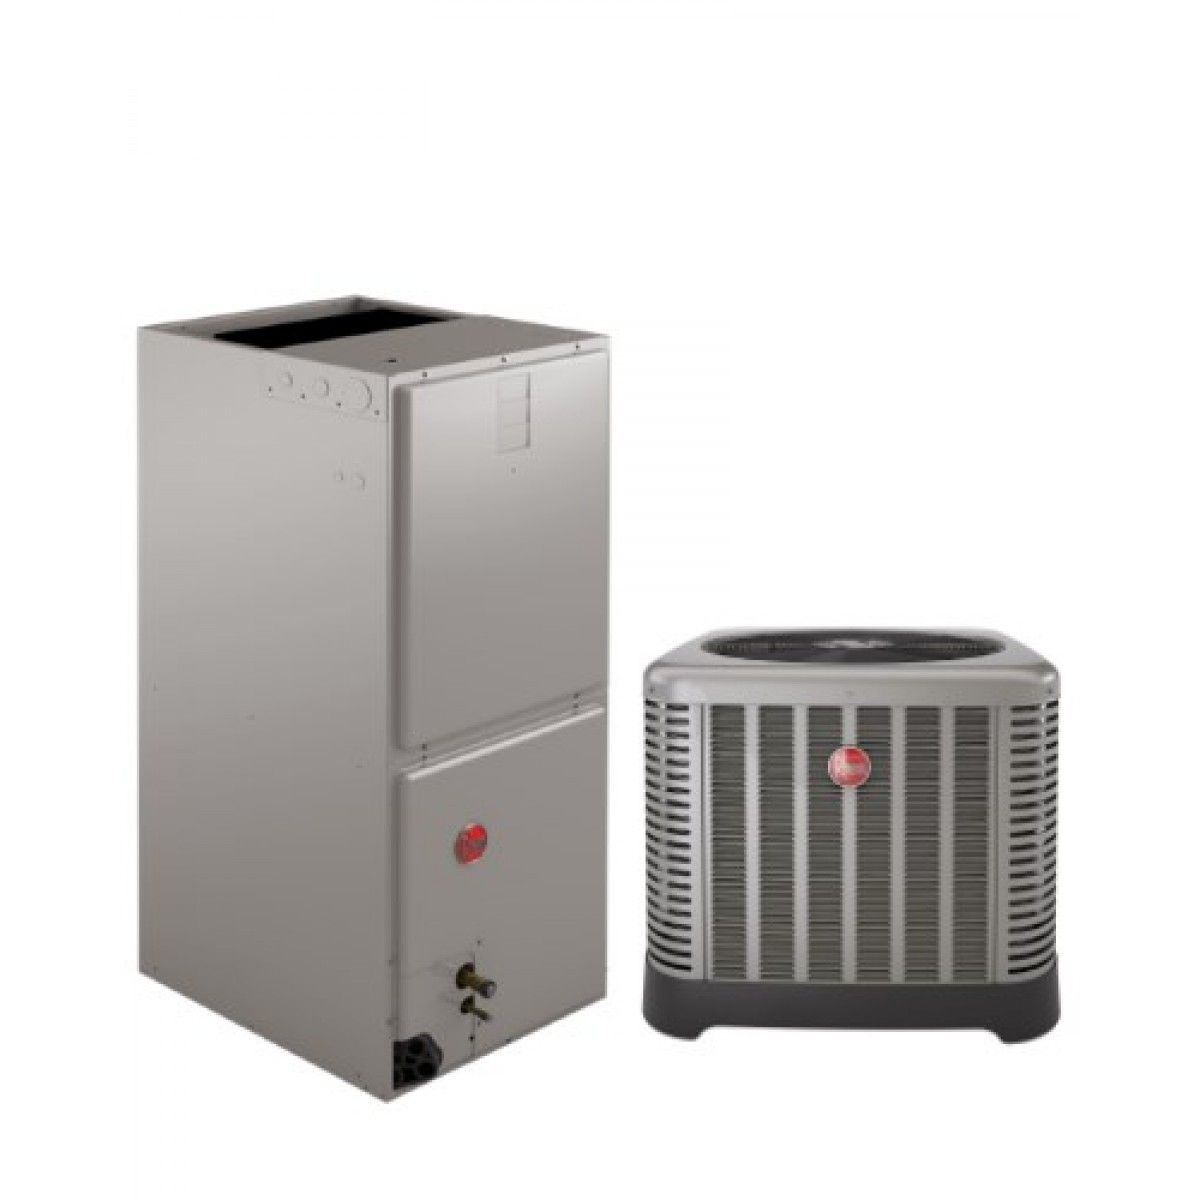 Rheem 4 0 Ton 14 Seer Air Conditioning System